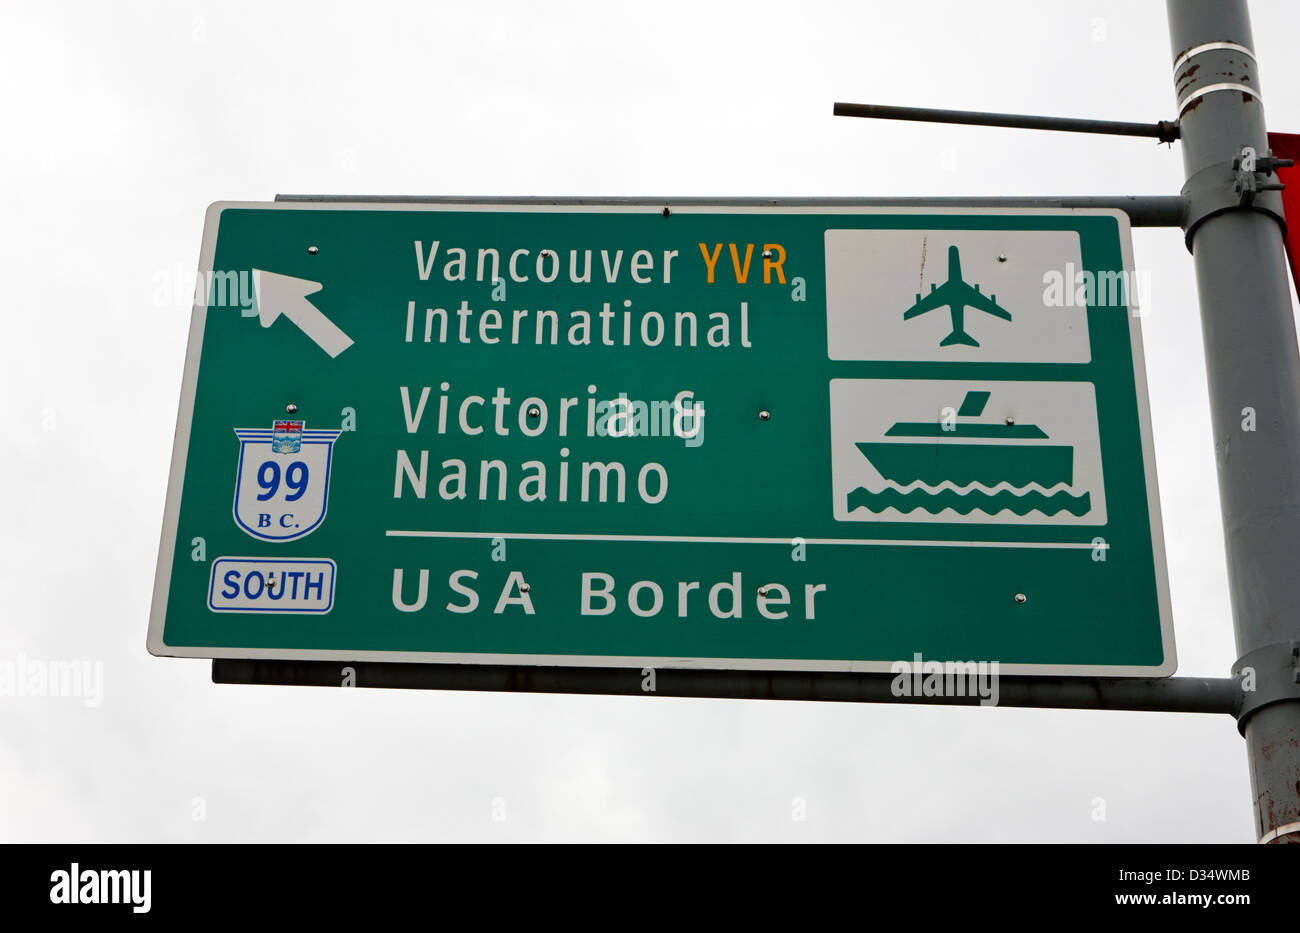 Roadsign For Vancouver Airport Victoria Nanaimo Ferries And Route 99 South To The USA Border BC Canada